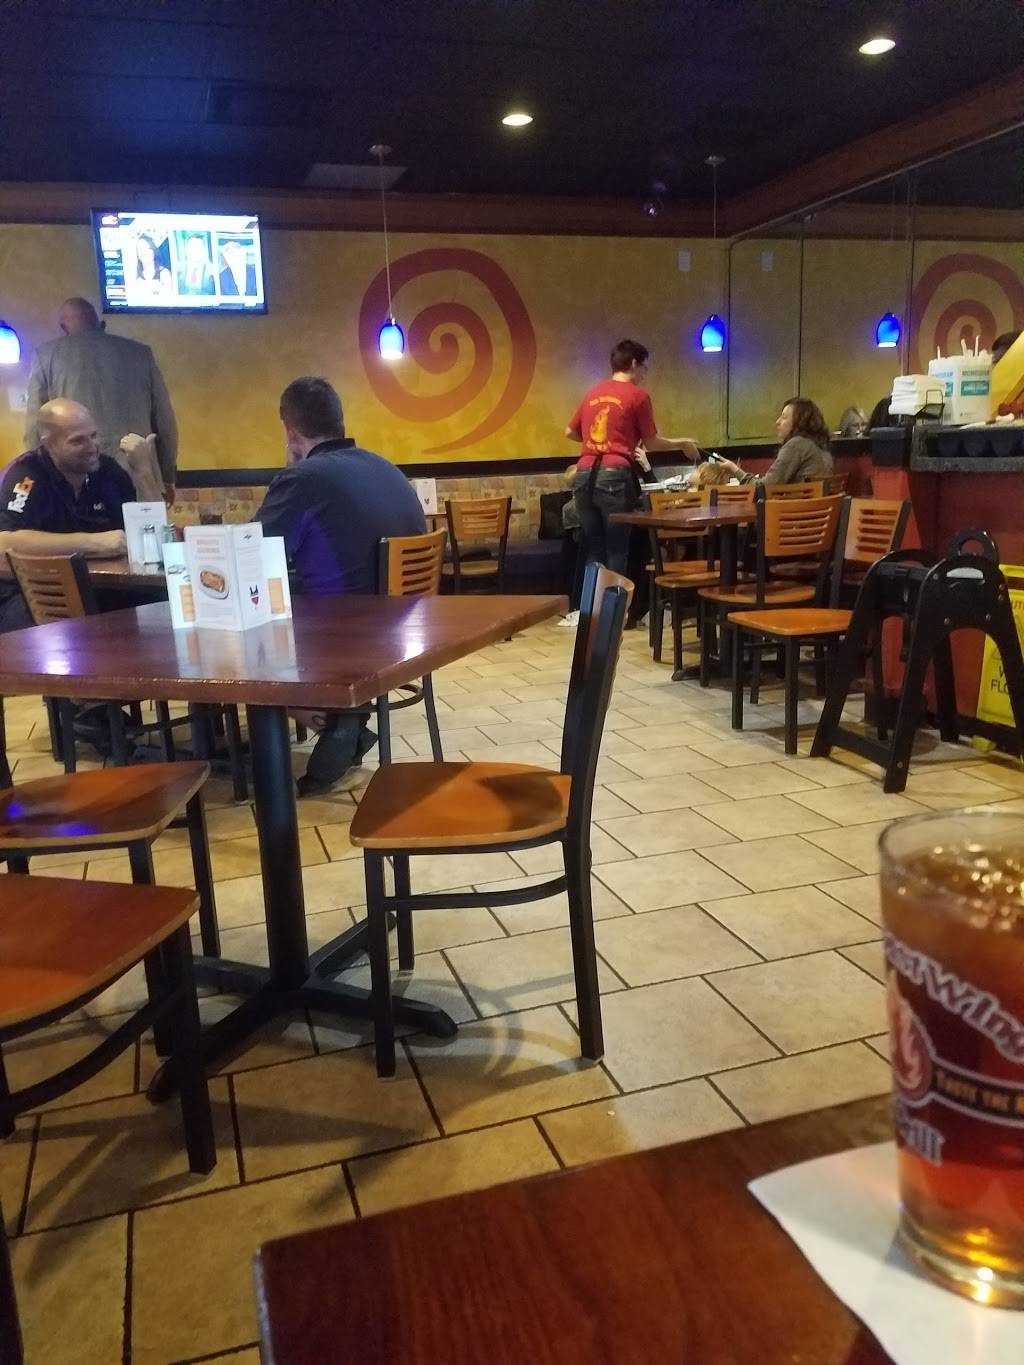 East Coast Wings & Grill | restaurant | 4880 Country Club Rd, Winston-Salem, NC 27104, USA | 3366599992 OR +1 336-659-9992